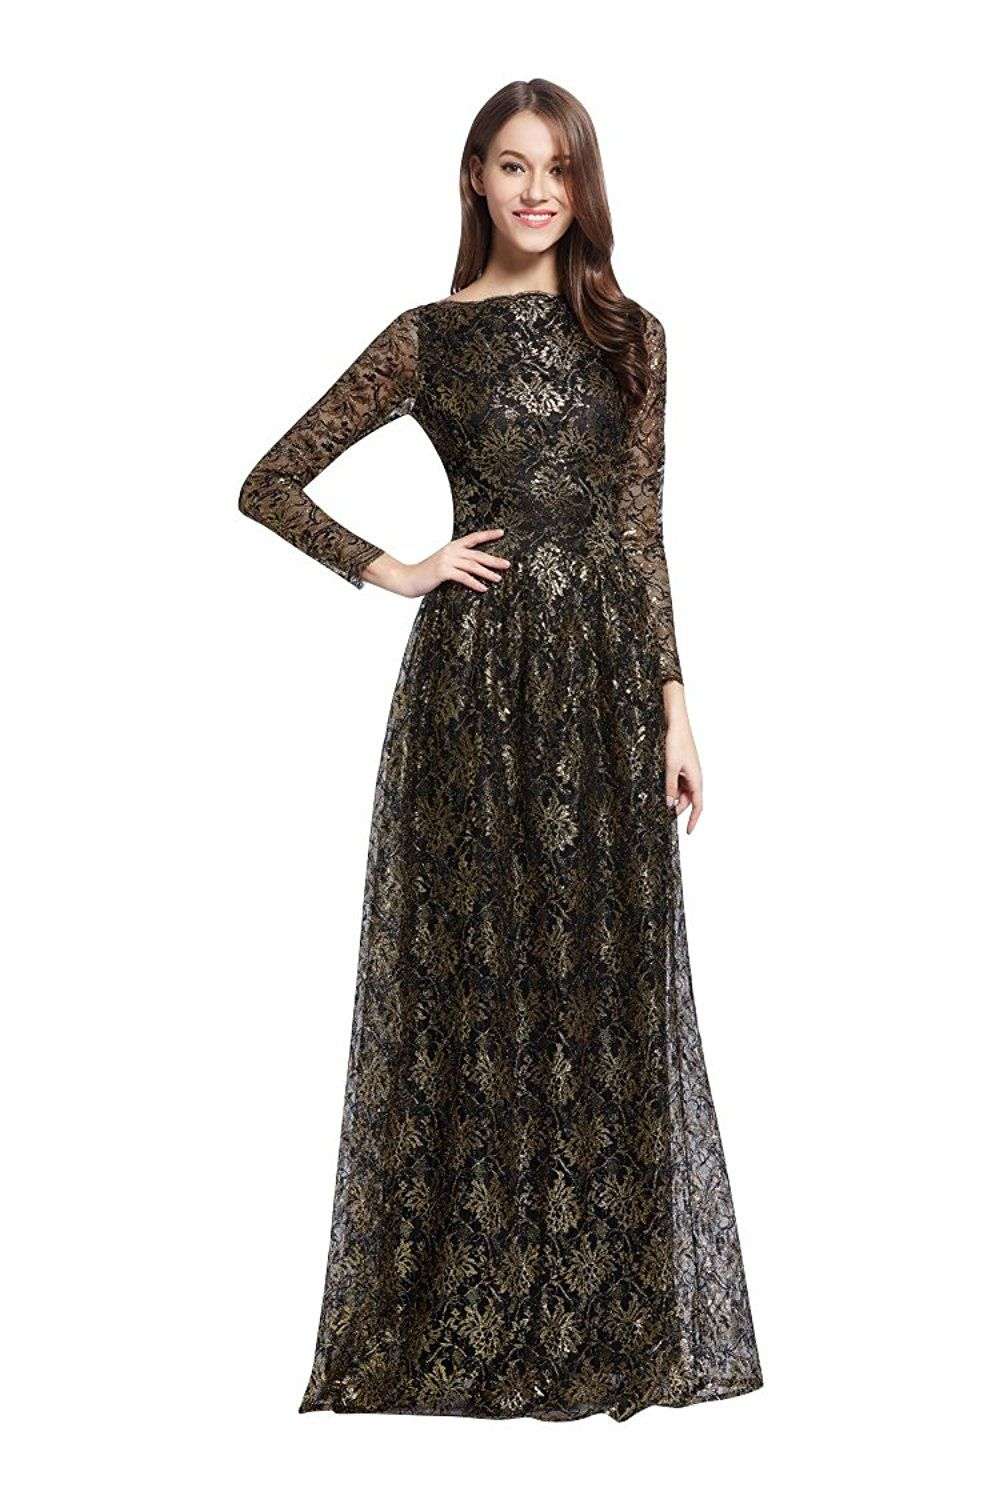 Beautyemily lace boat neck long sleeve evening dresses for more